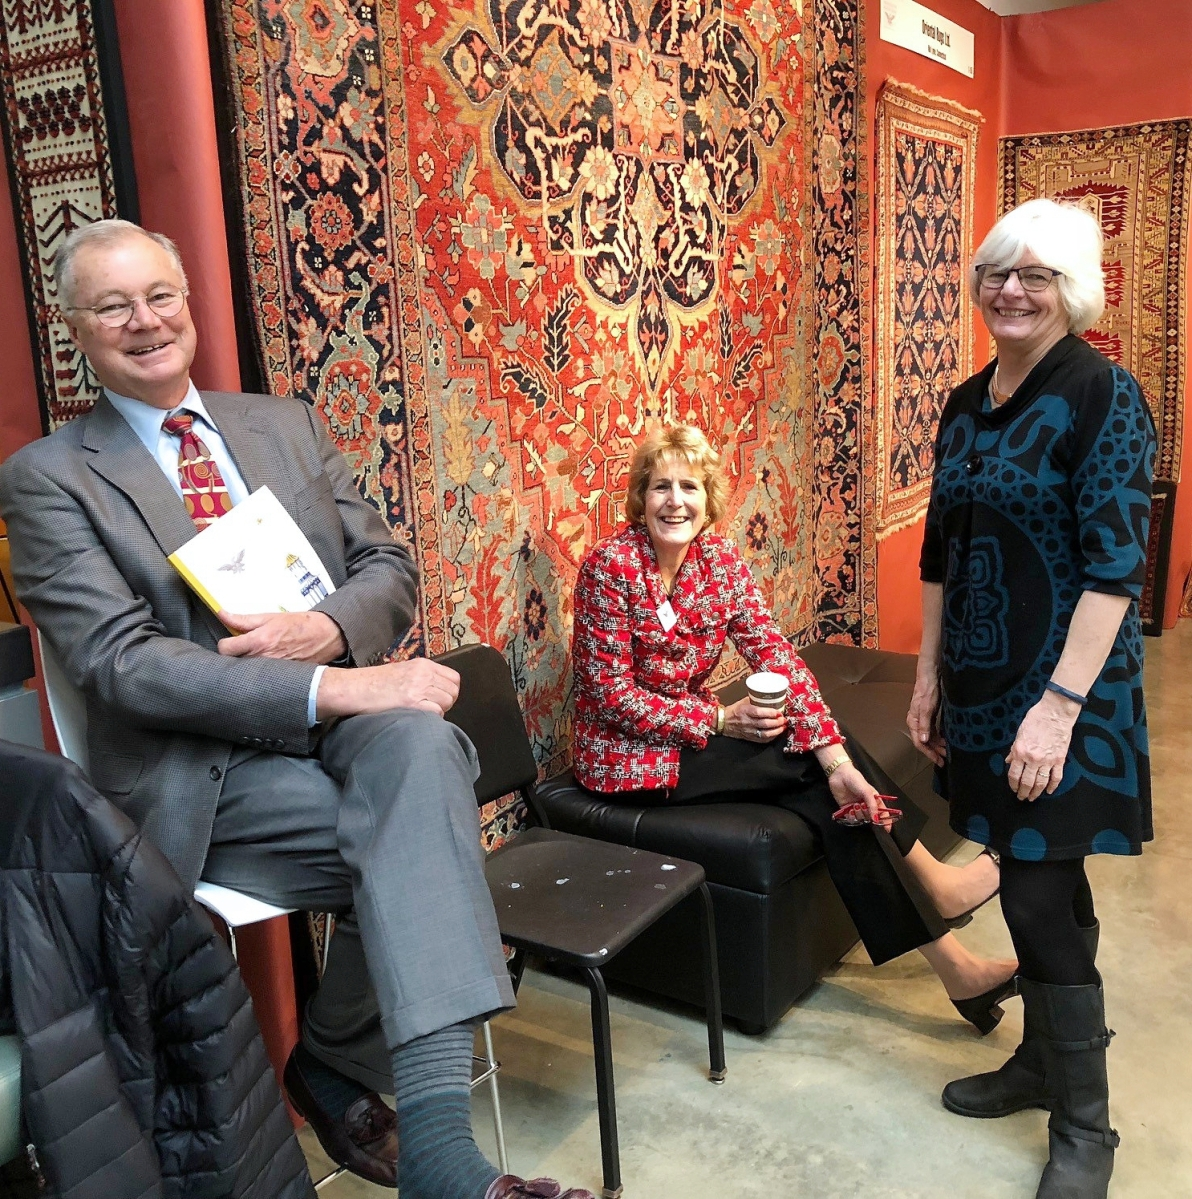 Karen DiSaia, right, manages the show with her husband, Ralph, left. The Oriental rug specialists set up across from Diana Bittel, center, with whom they orchestrate the Philadelphia Antiques and Art Show.